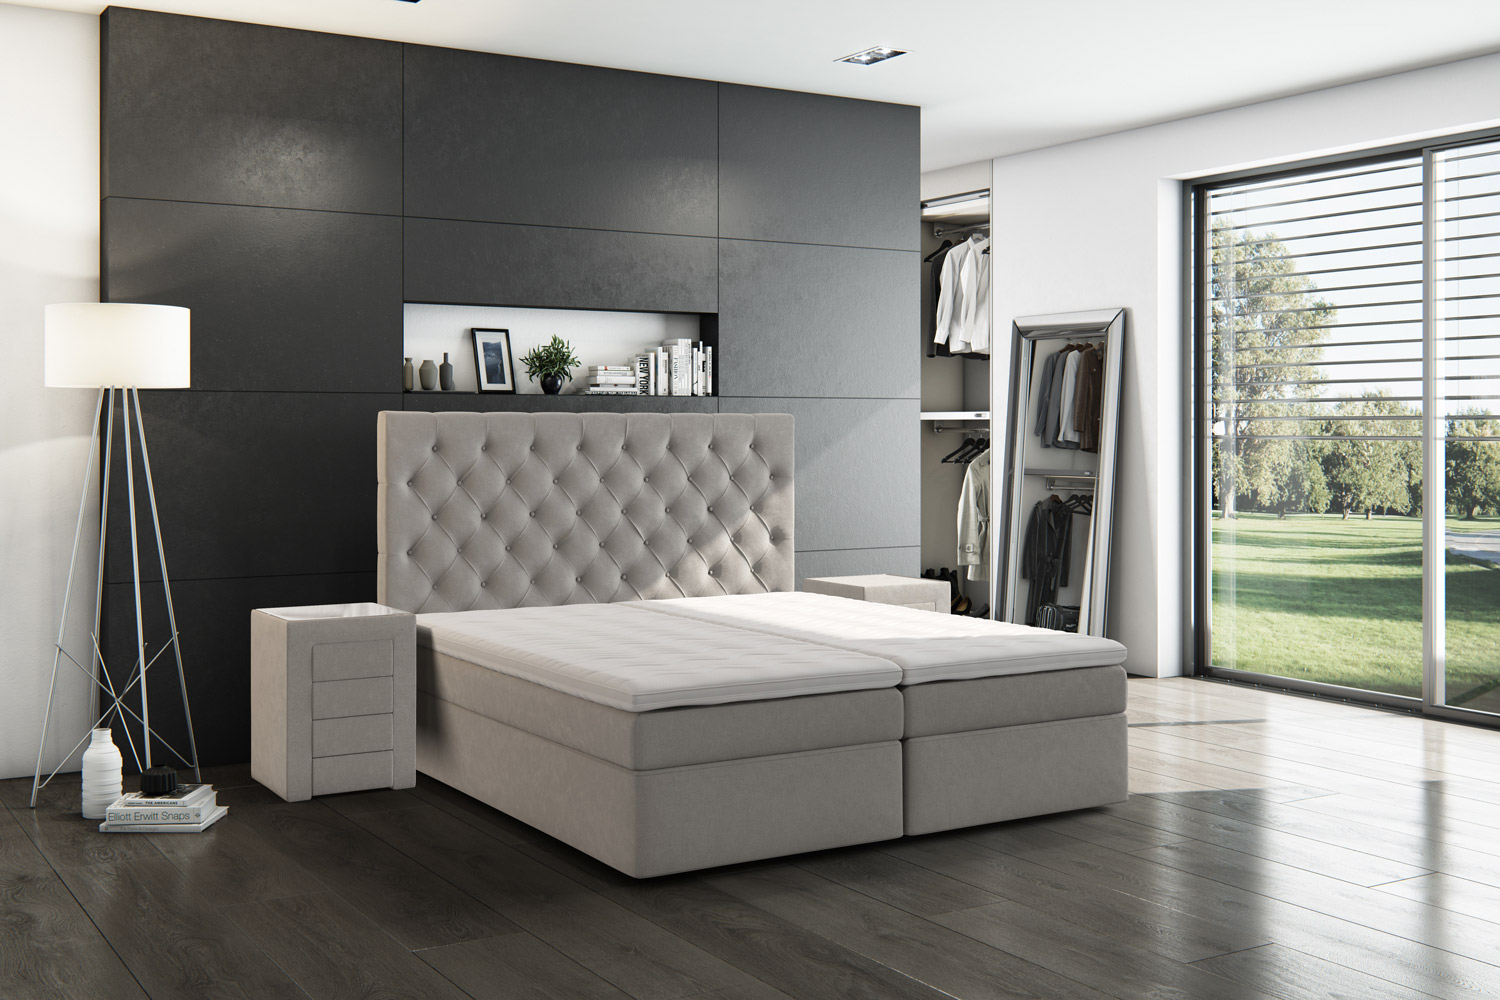 bettwaren borghoff brinkhaus boxspringbett samnaun 200x200 cm. Black Bedroom Furniture Sets. Home Design Ideas